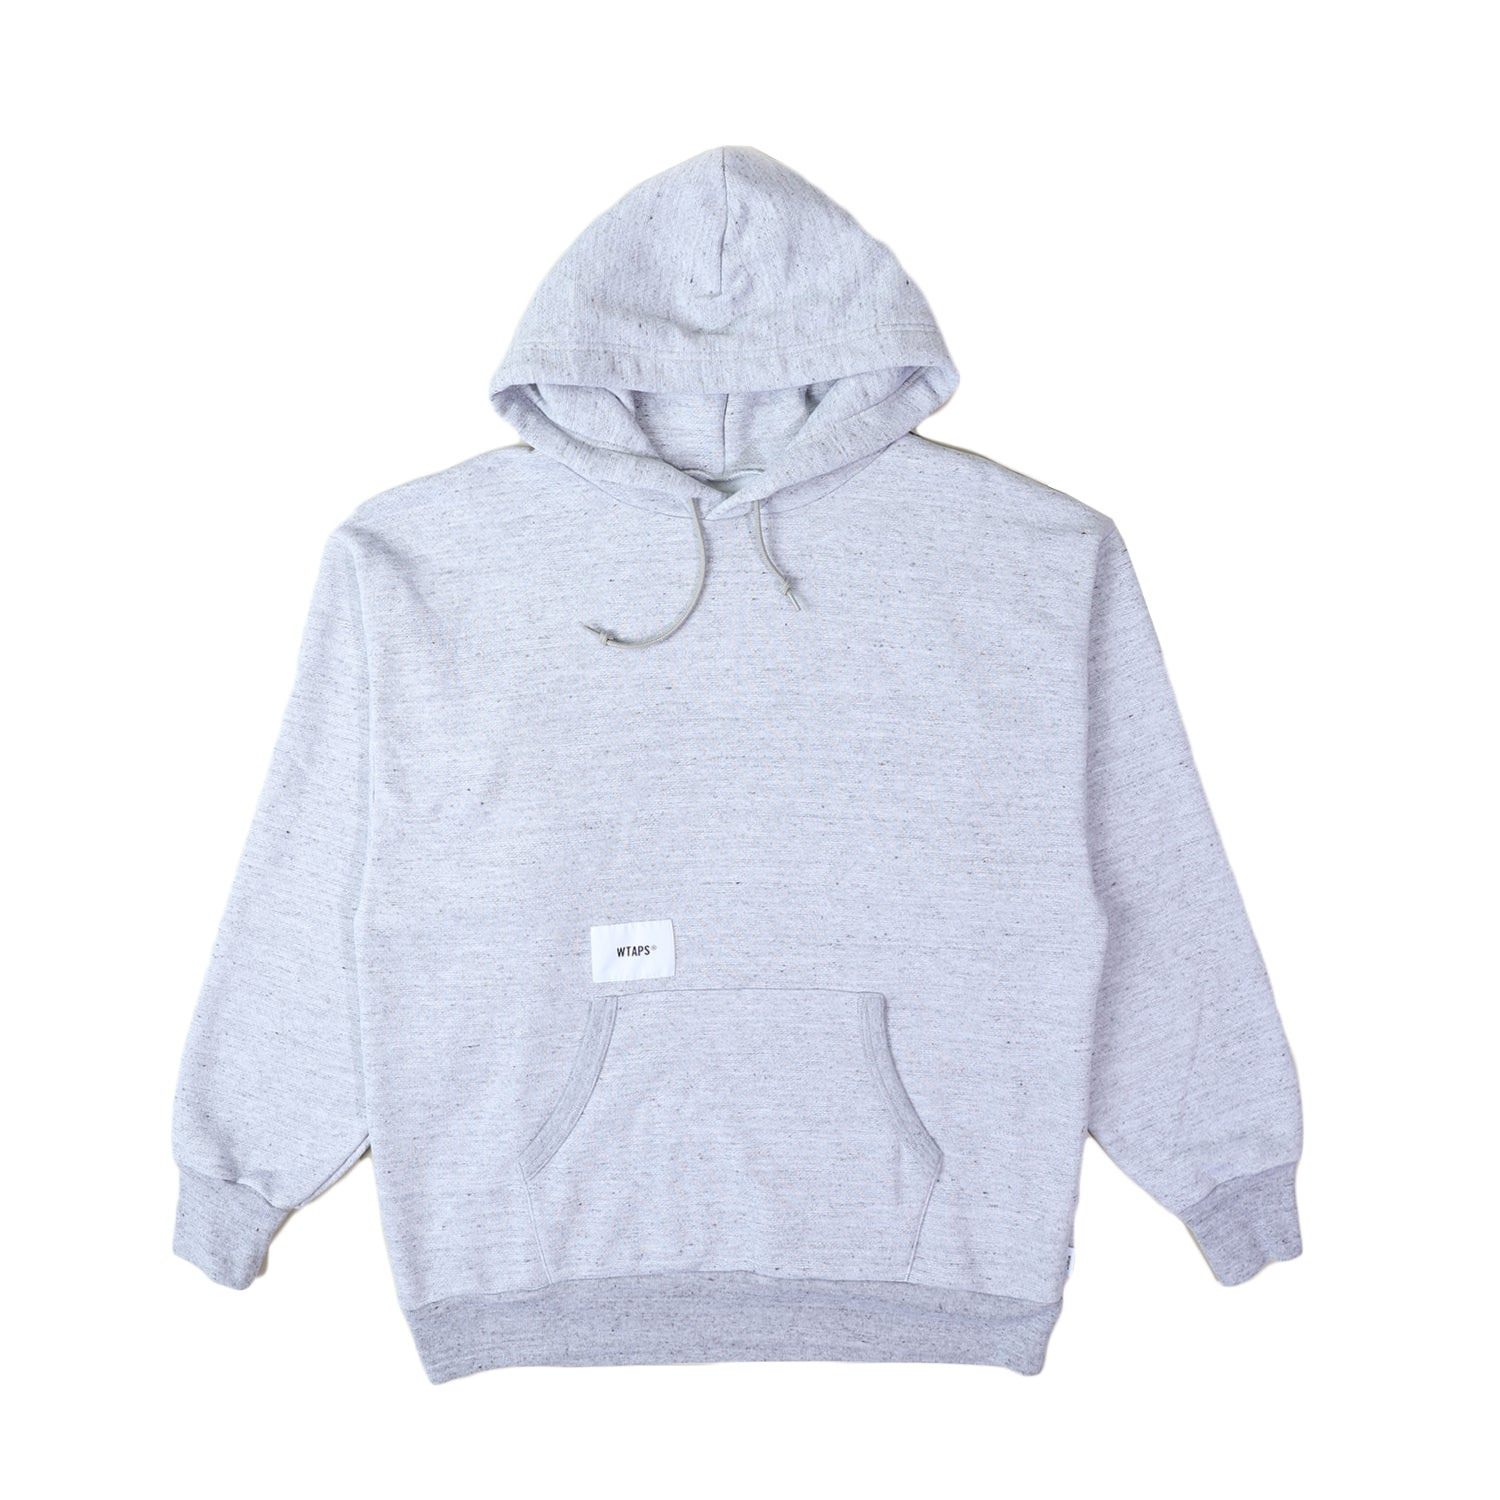 ACADEMY HOODED/ SWEATSHIRT